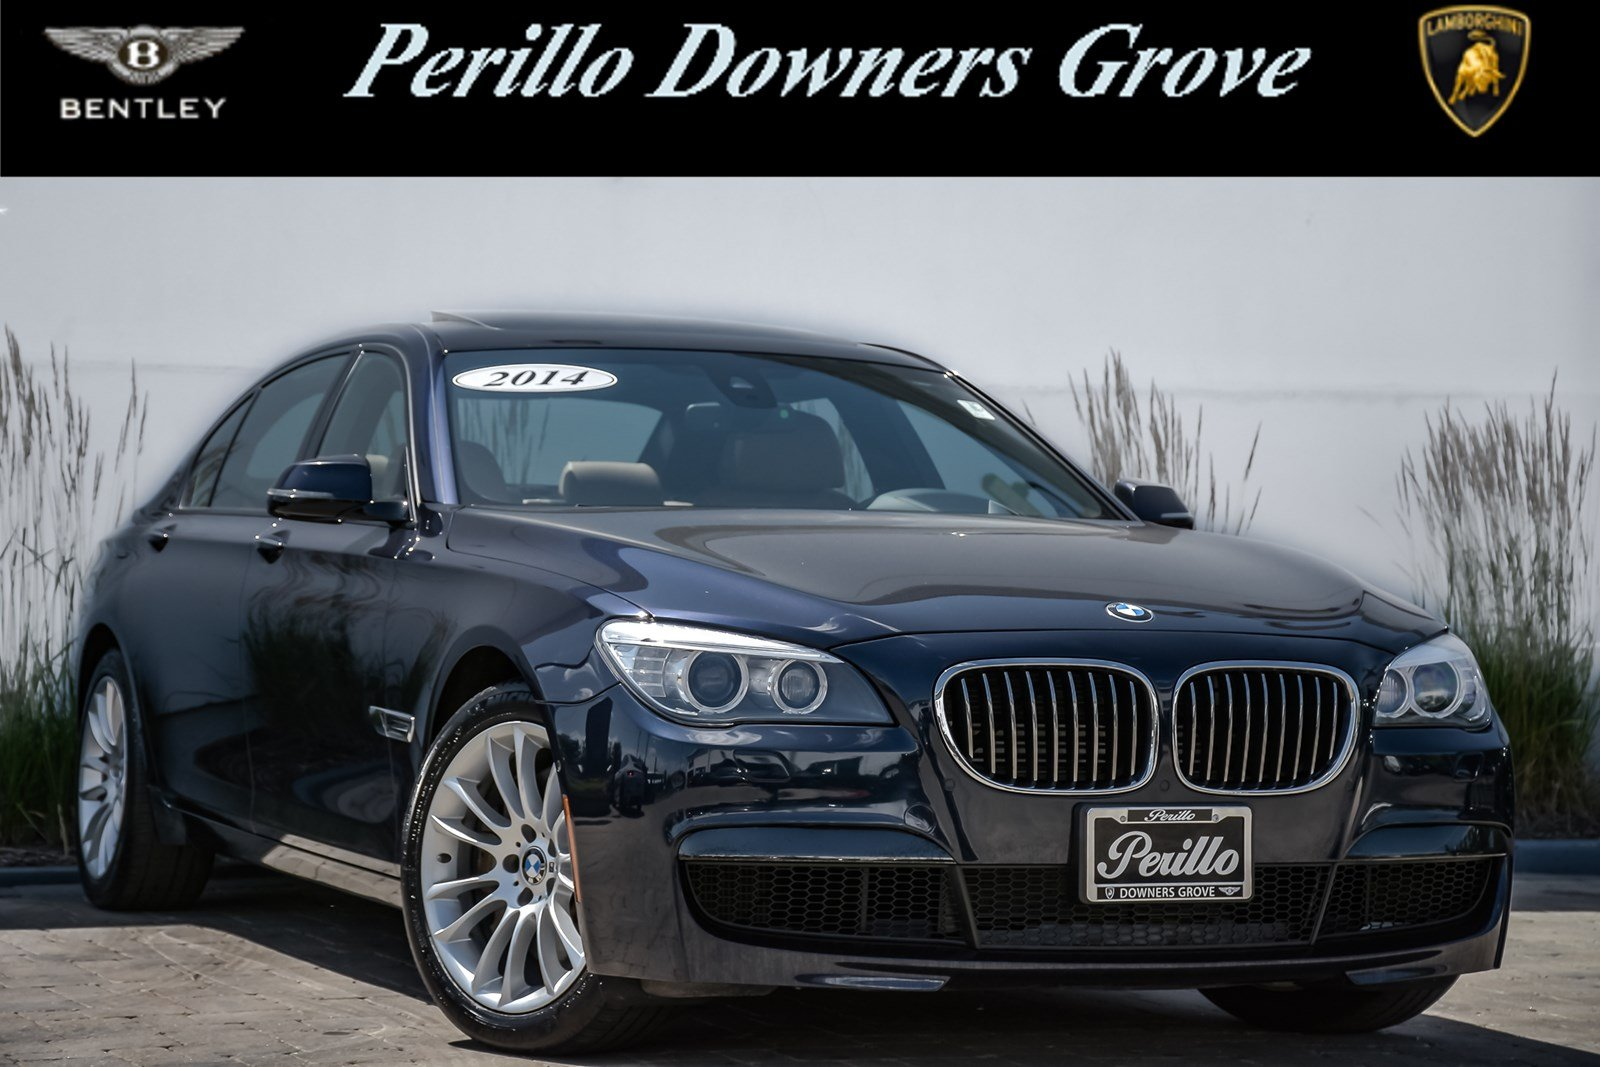 Pre-Owned 2014 BMW 7 Series 750Li xDrive Executive/M-Sport With Navigation